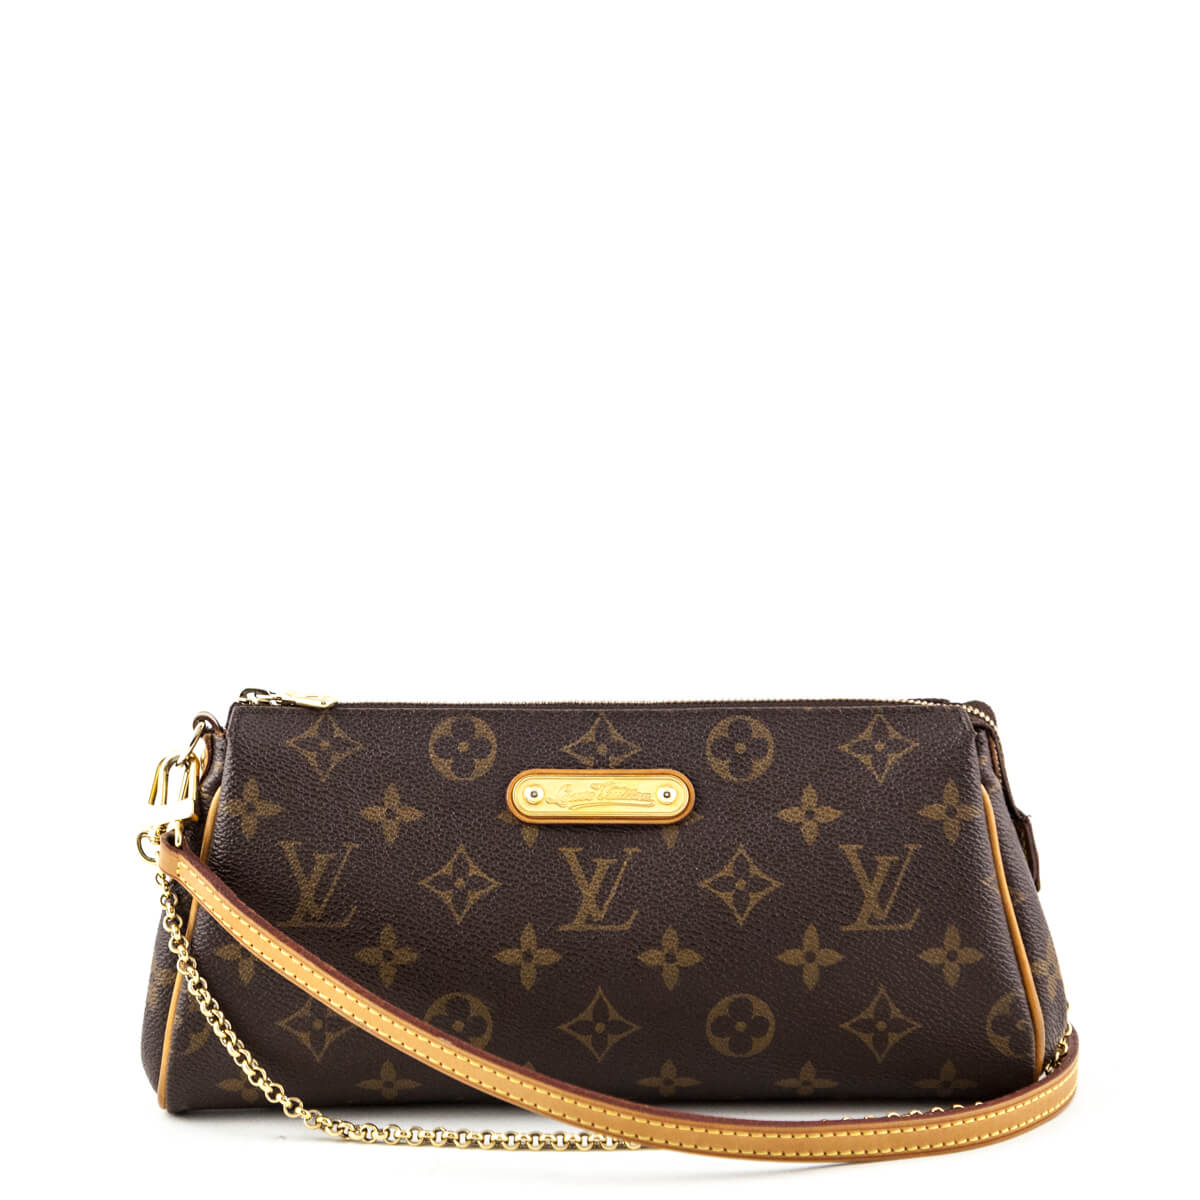 63bd1da6e856 Louis Vuitton Monogram Eva Bag - LOVE that BAG - Preowned Authentic  Designer Handbags ...